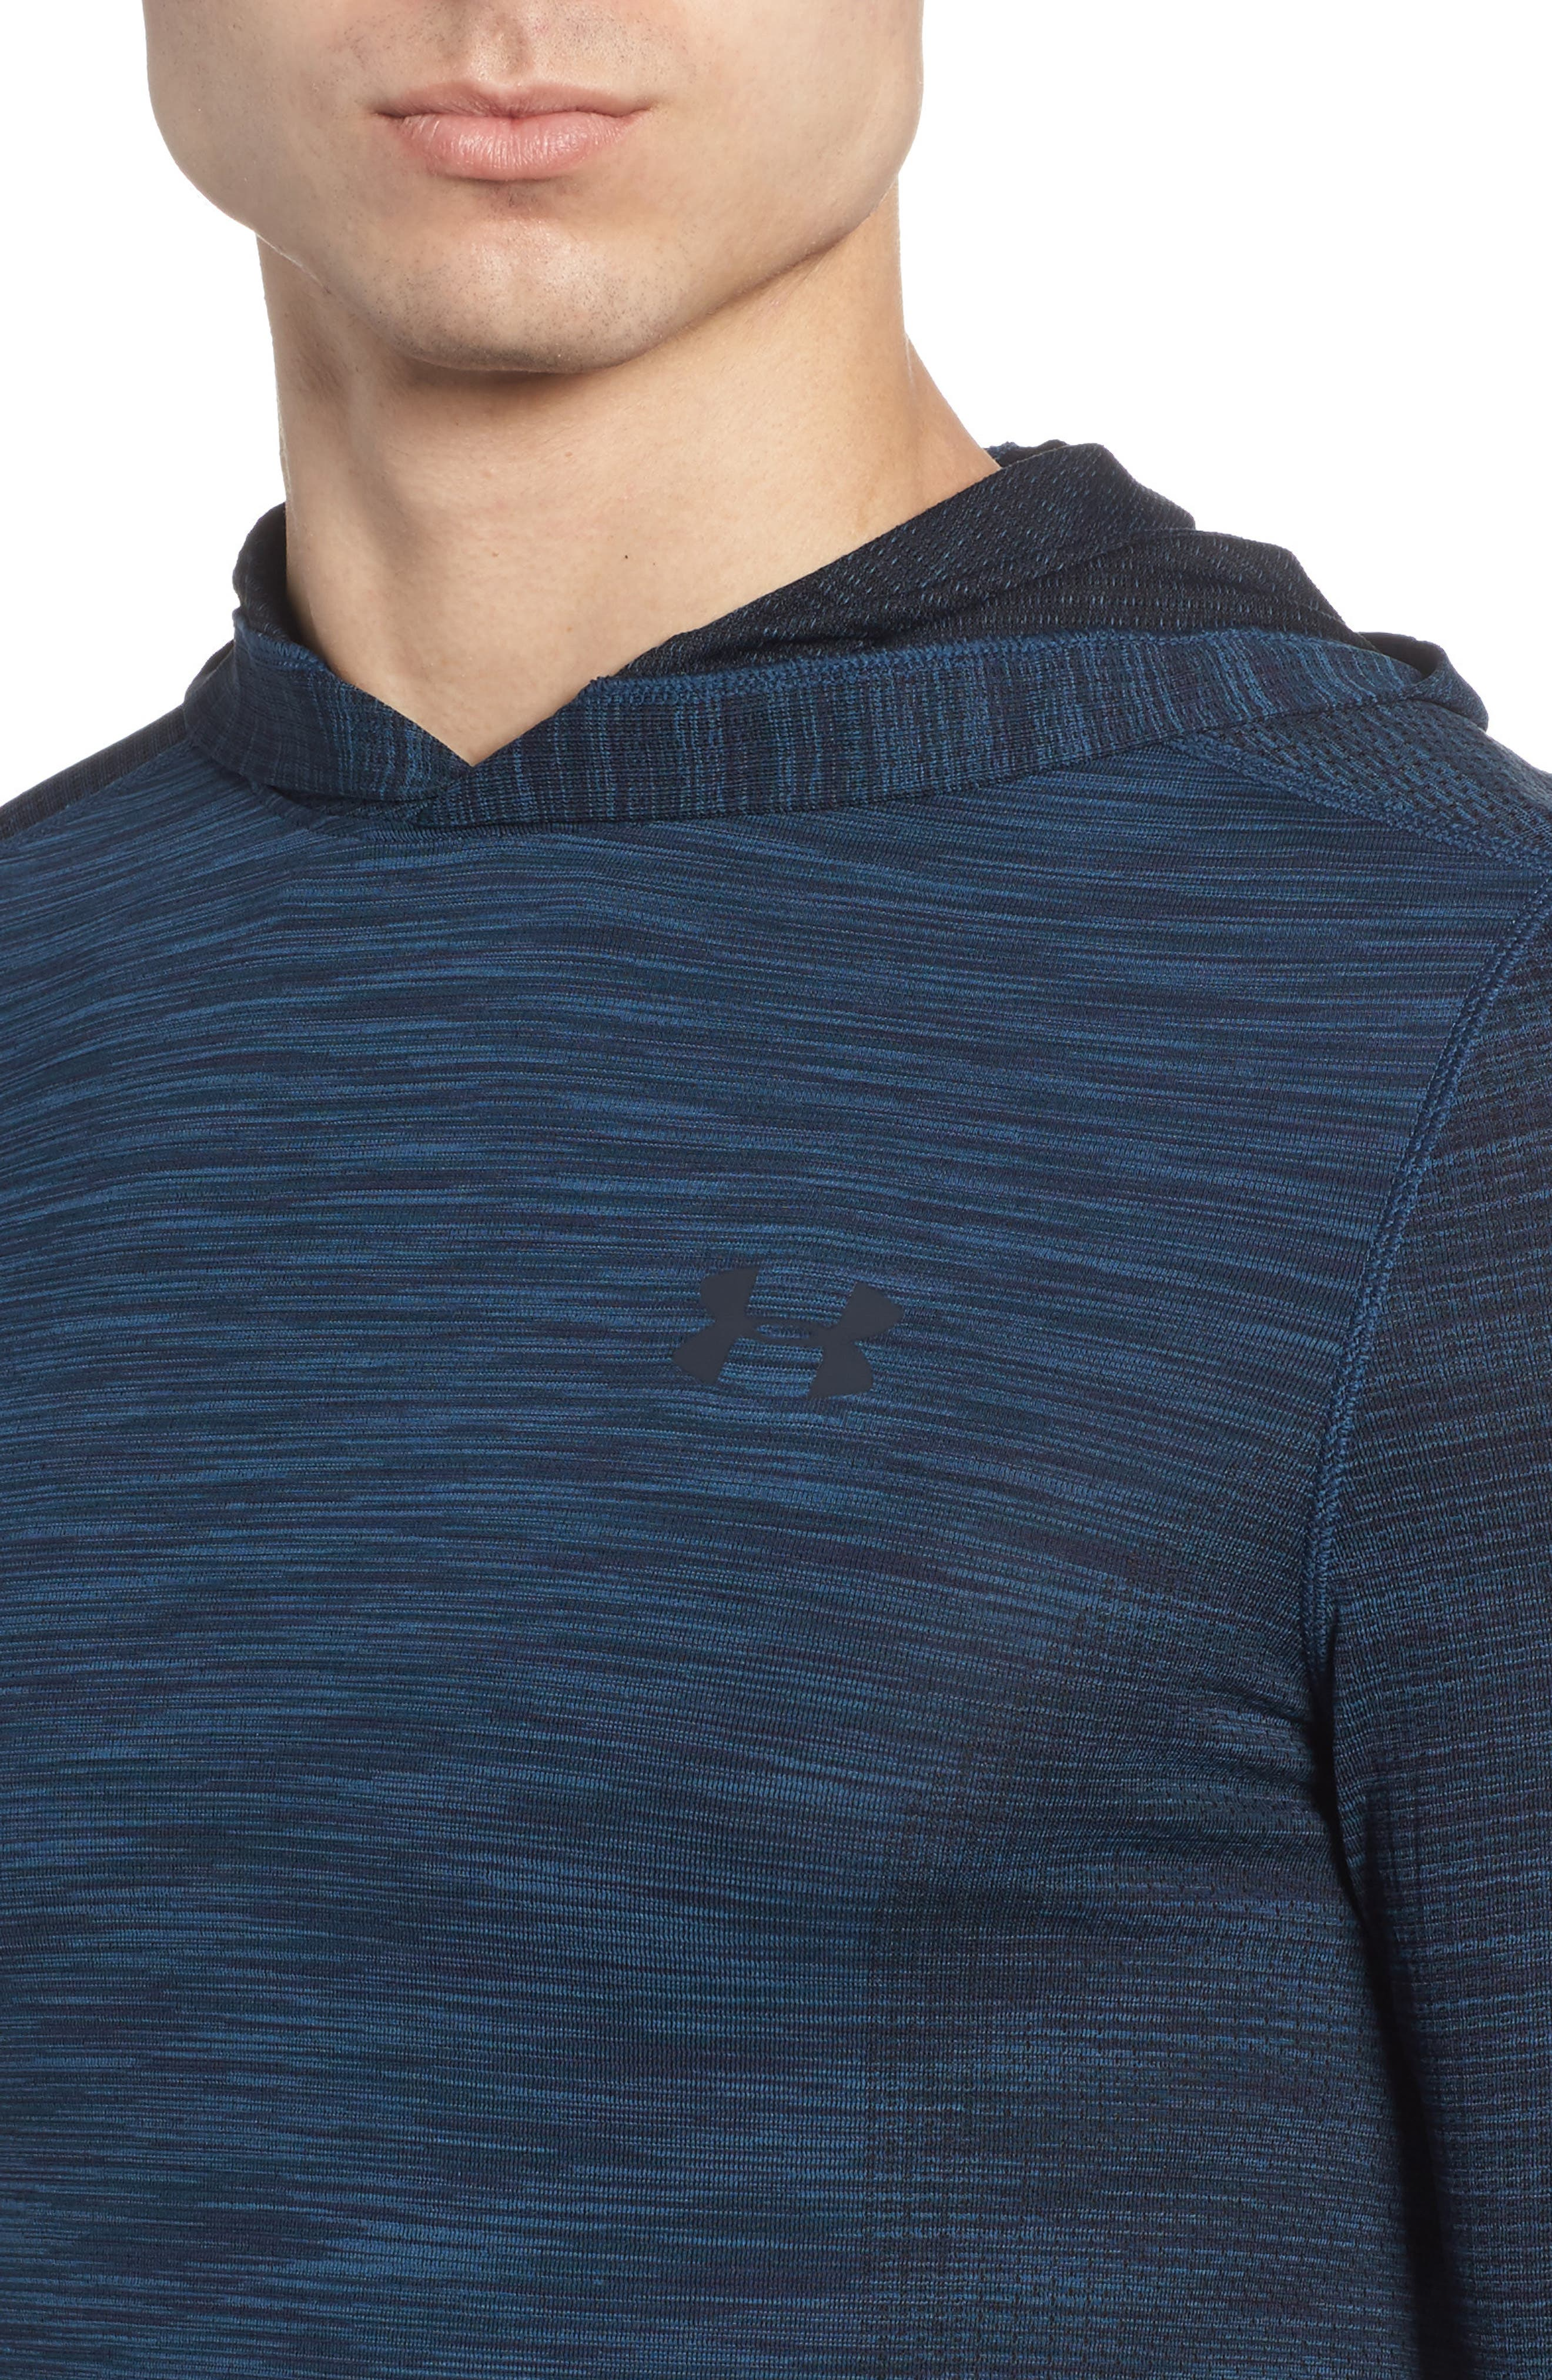 Threadbone Fitted Seamless Hoodie,                             Alternate thumbnail 4, color,                             True Ink/ Anthracite